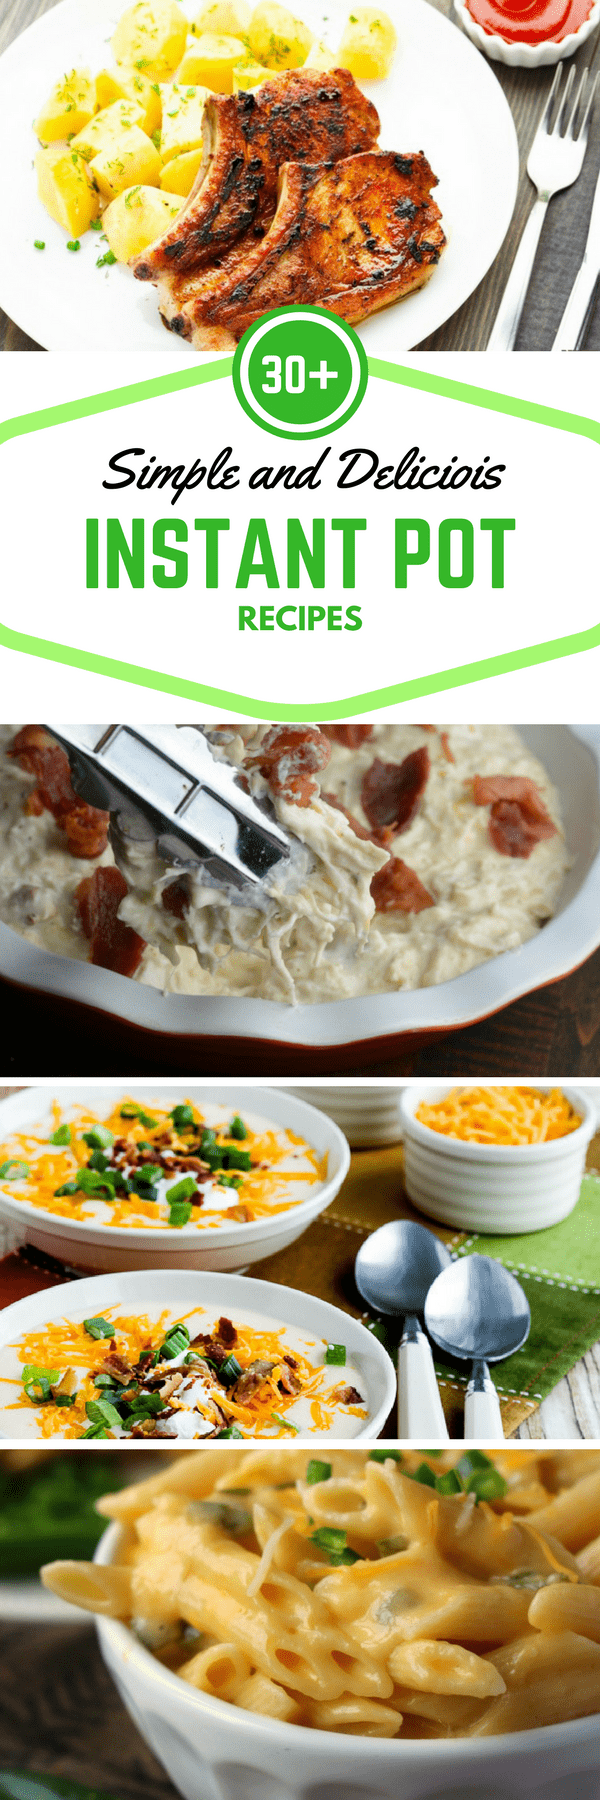 Simple Instant Pot Recipes